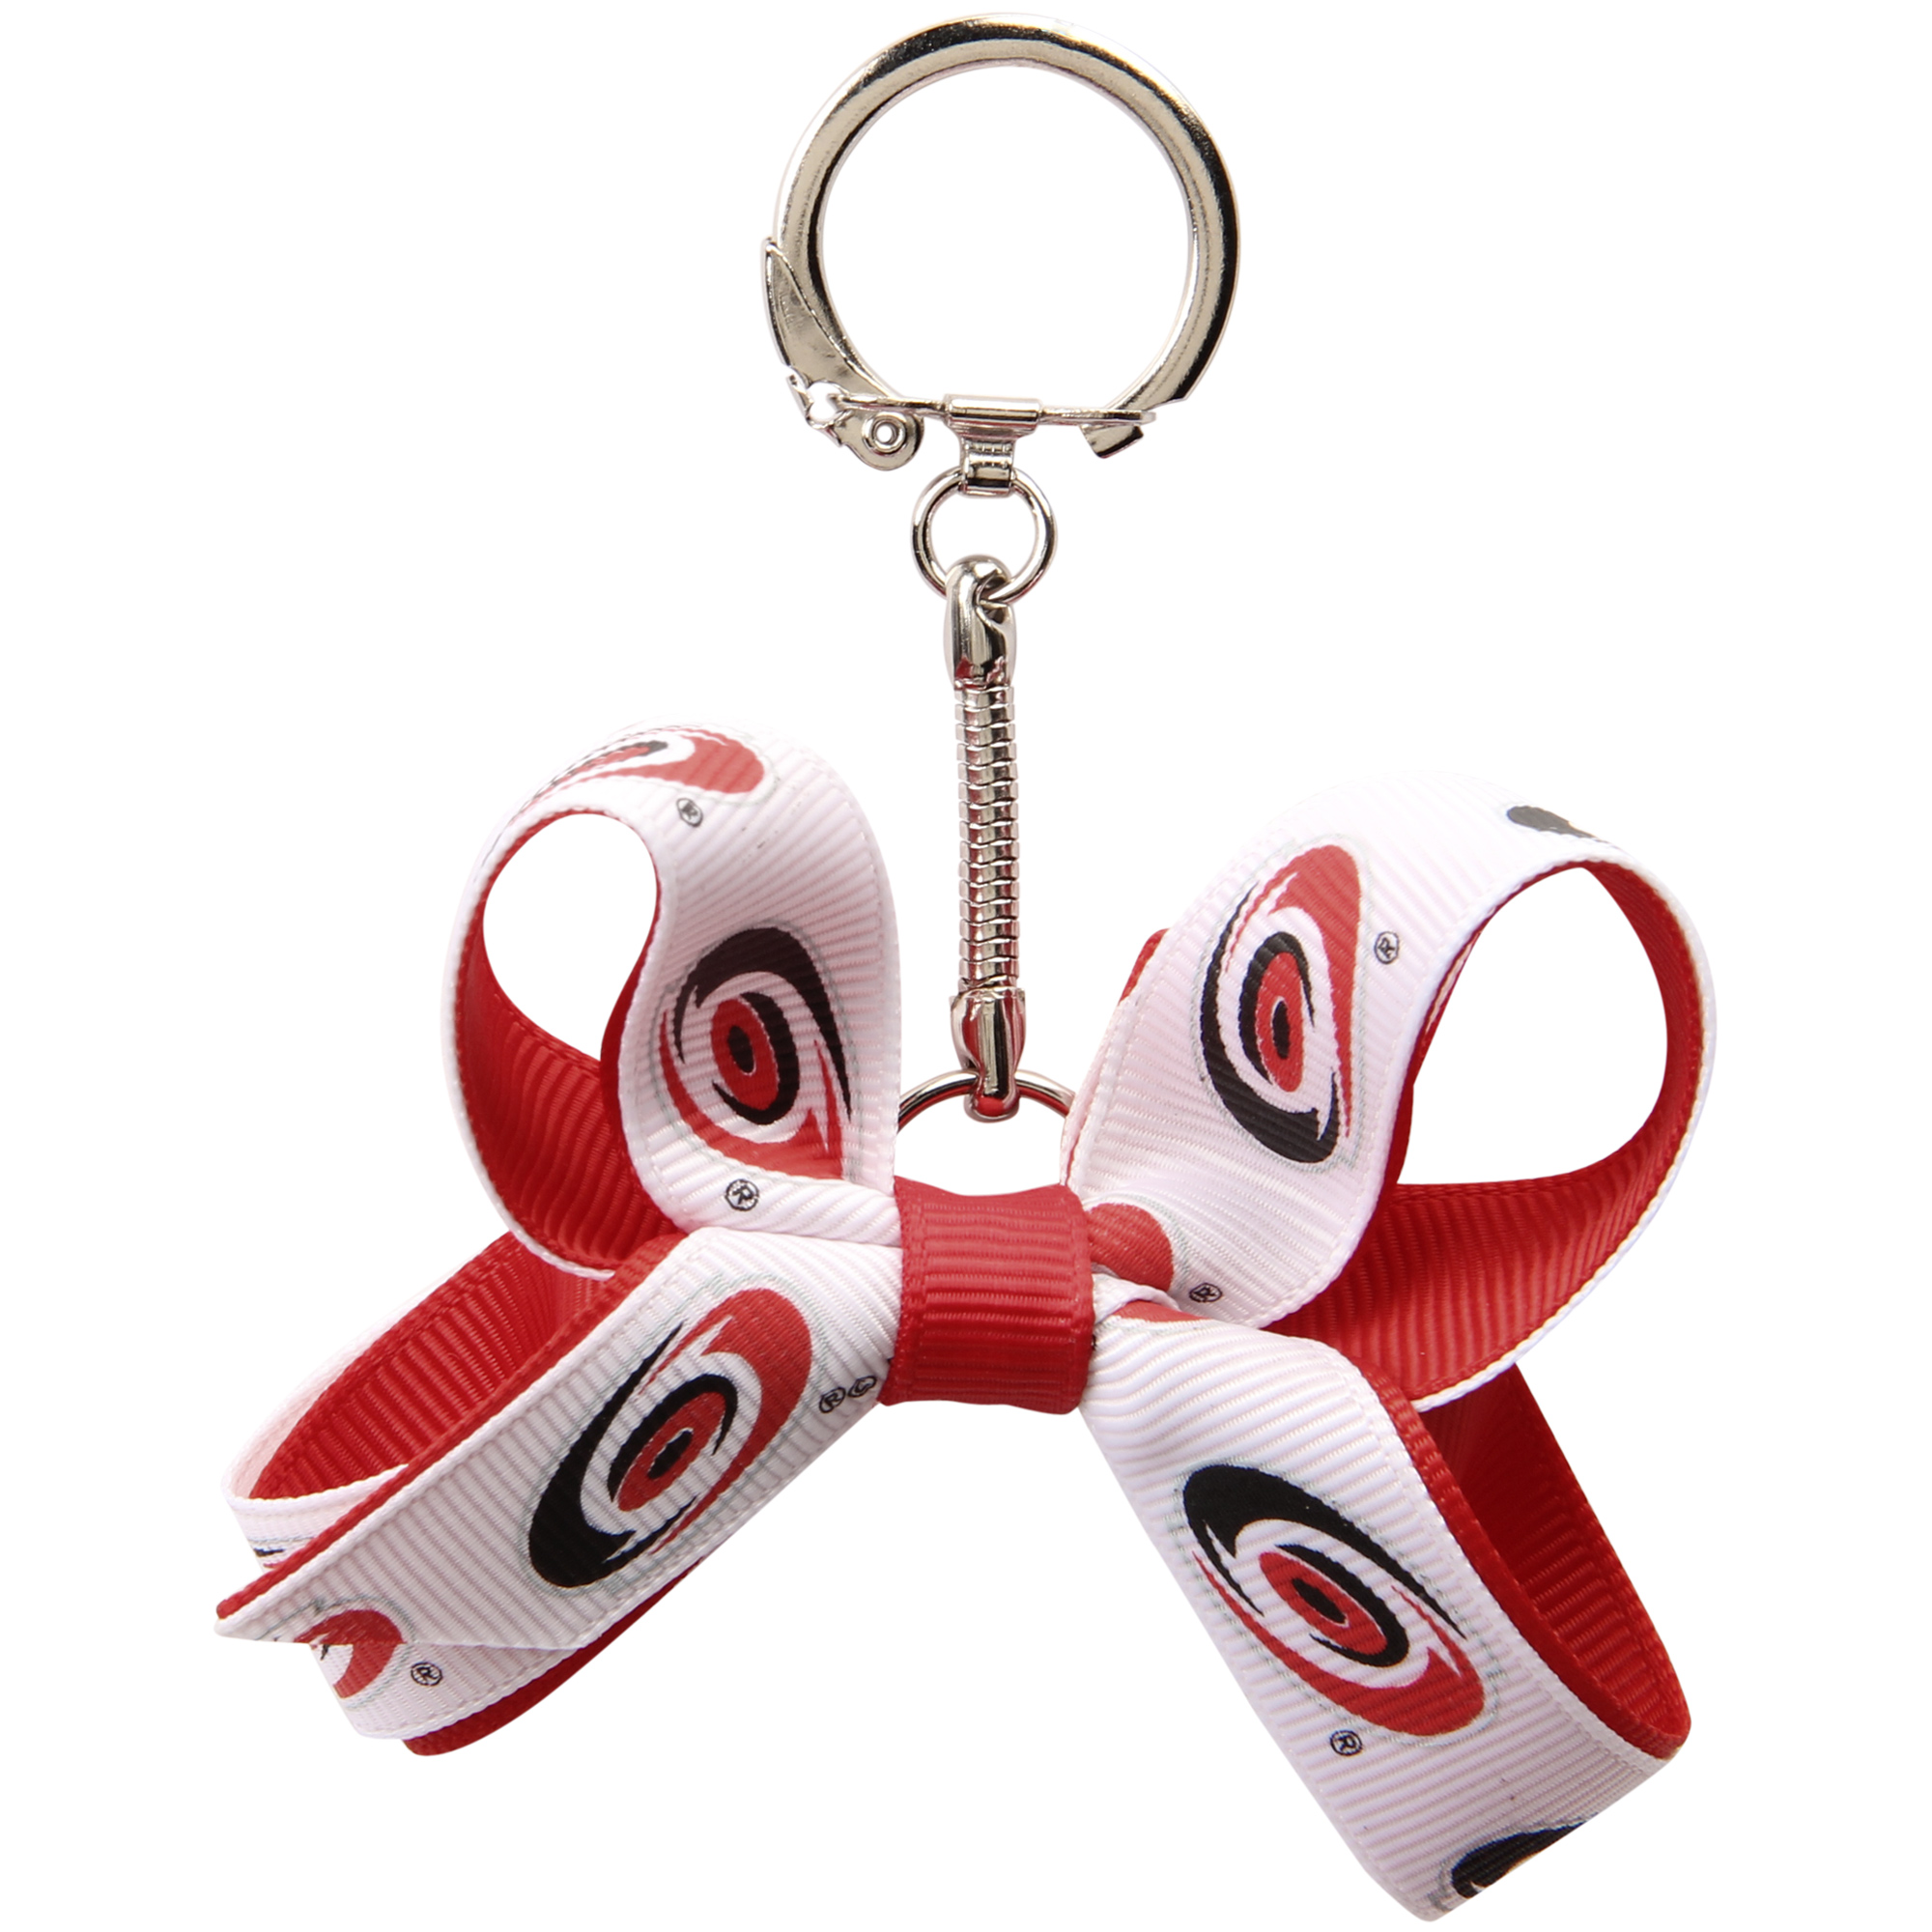 Carolina Hurricanes Women's 2-Tone Mini Bow Keychain - No Size